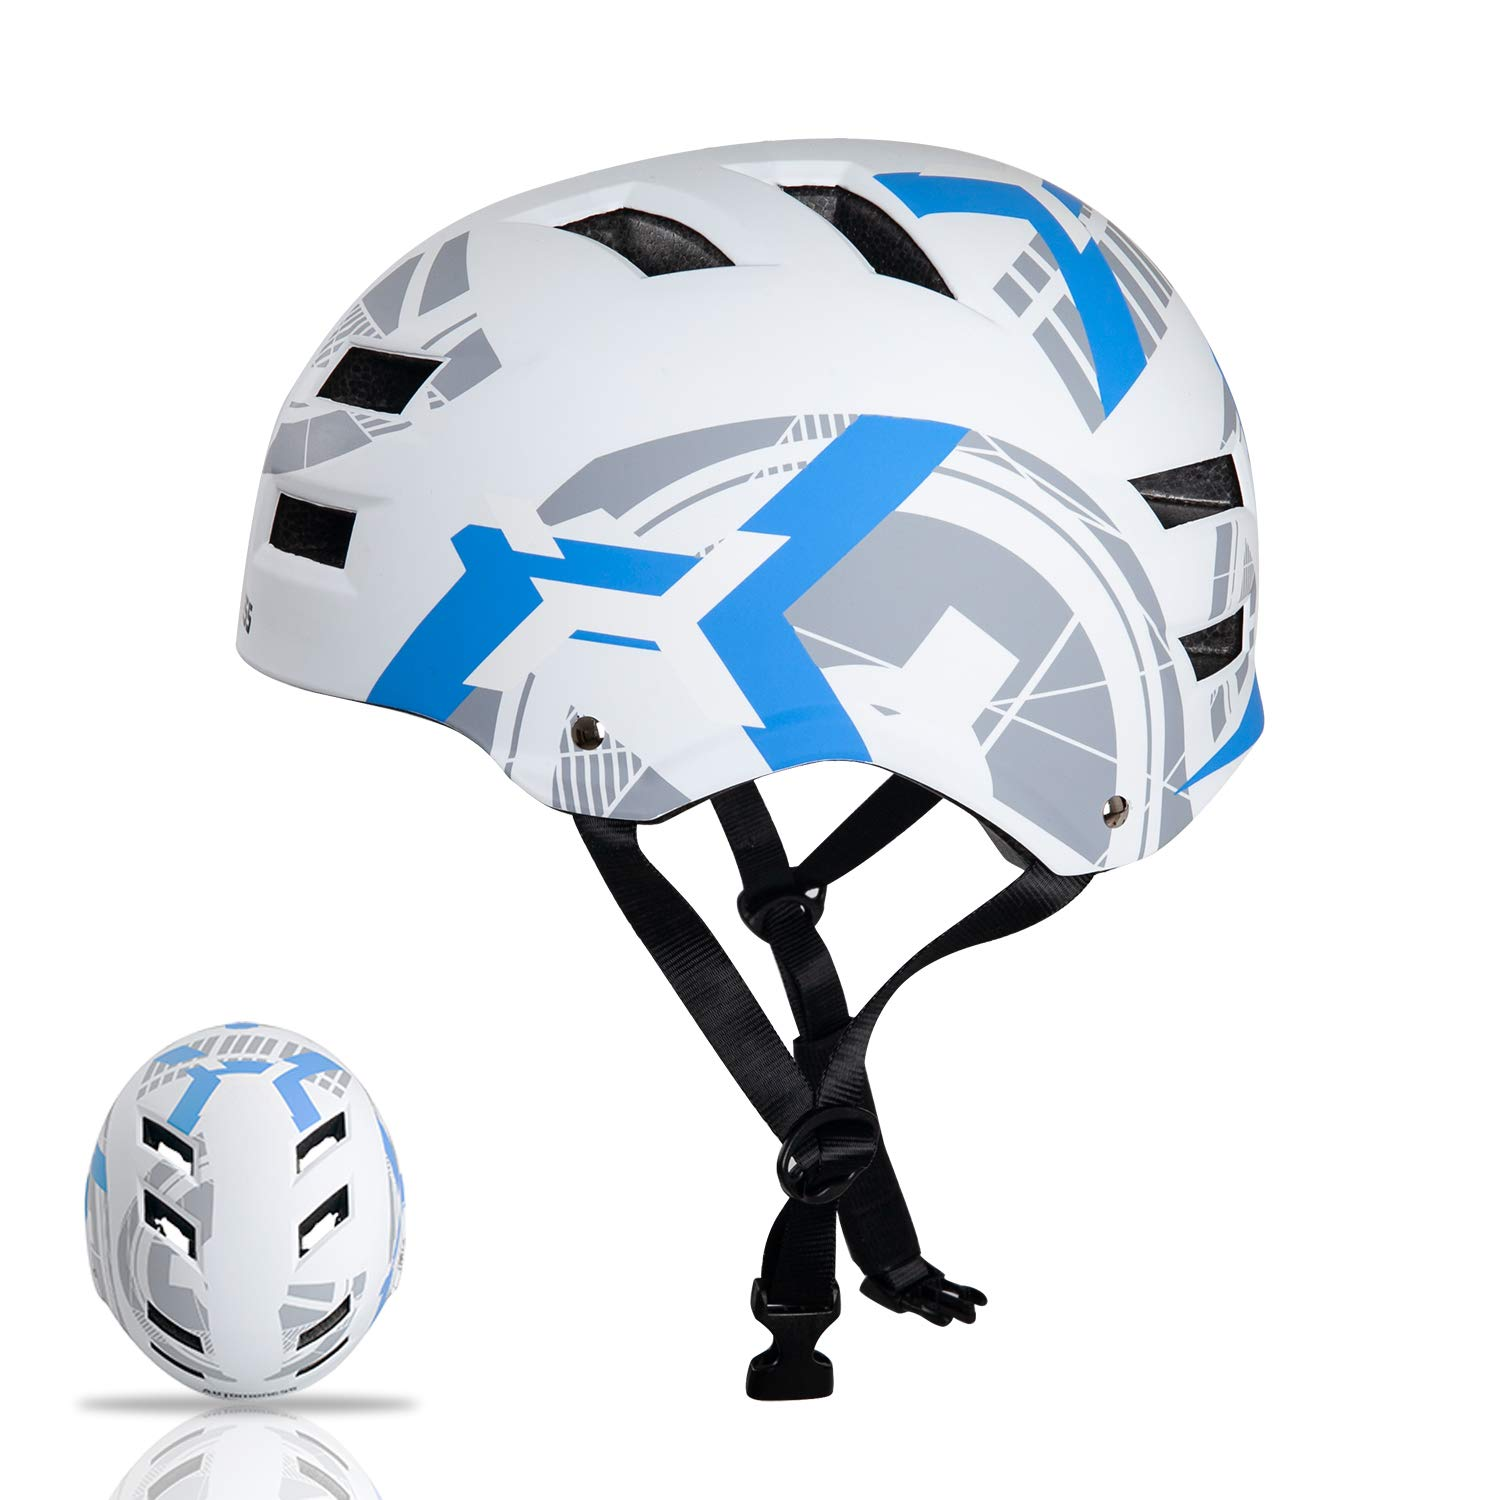 Automoness Skateboard Helmet for Kids Youth Adult, CPSC ASTM Certified Safety Skate Bike Helmet,Muti-Sport Helmet for Skating,Scooter,Bicycle,Roller,Inline,Longboard,3 Sizes